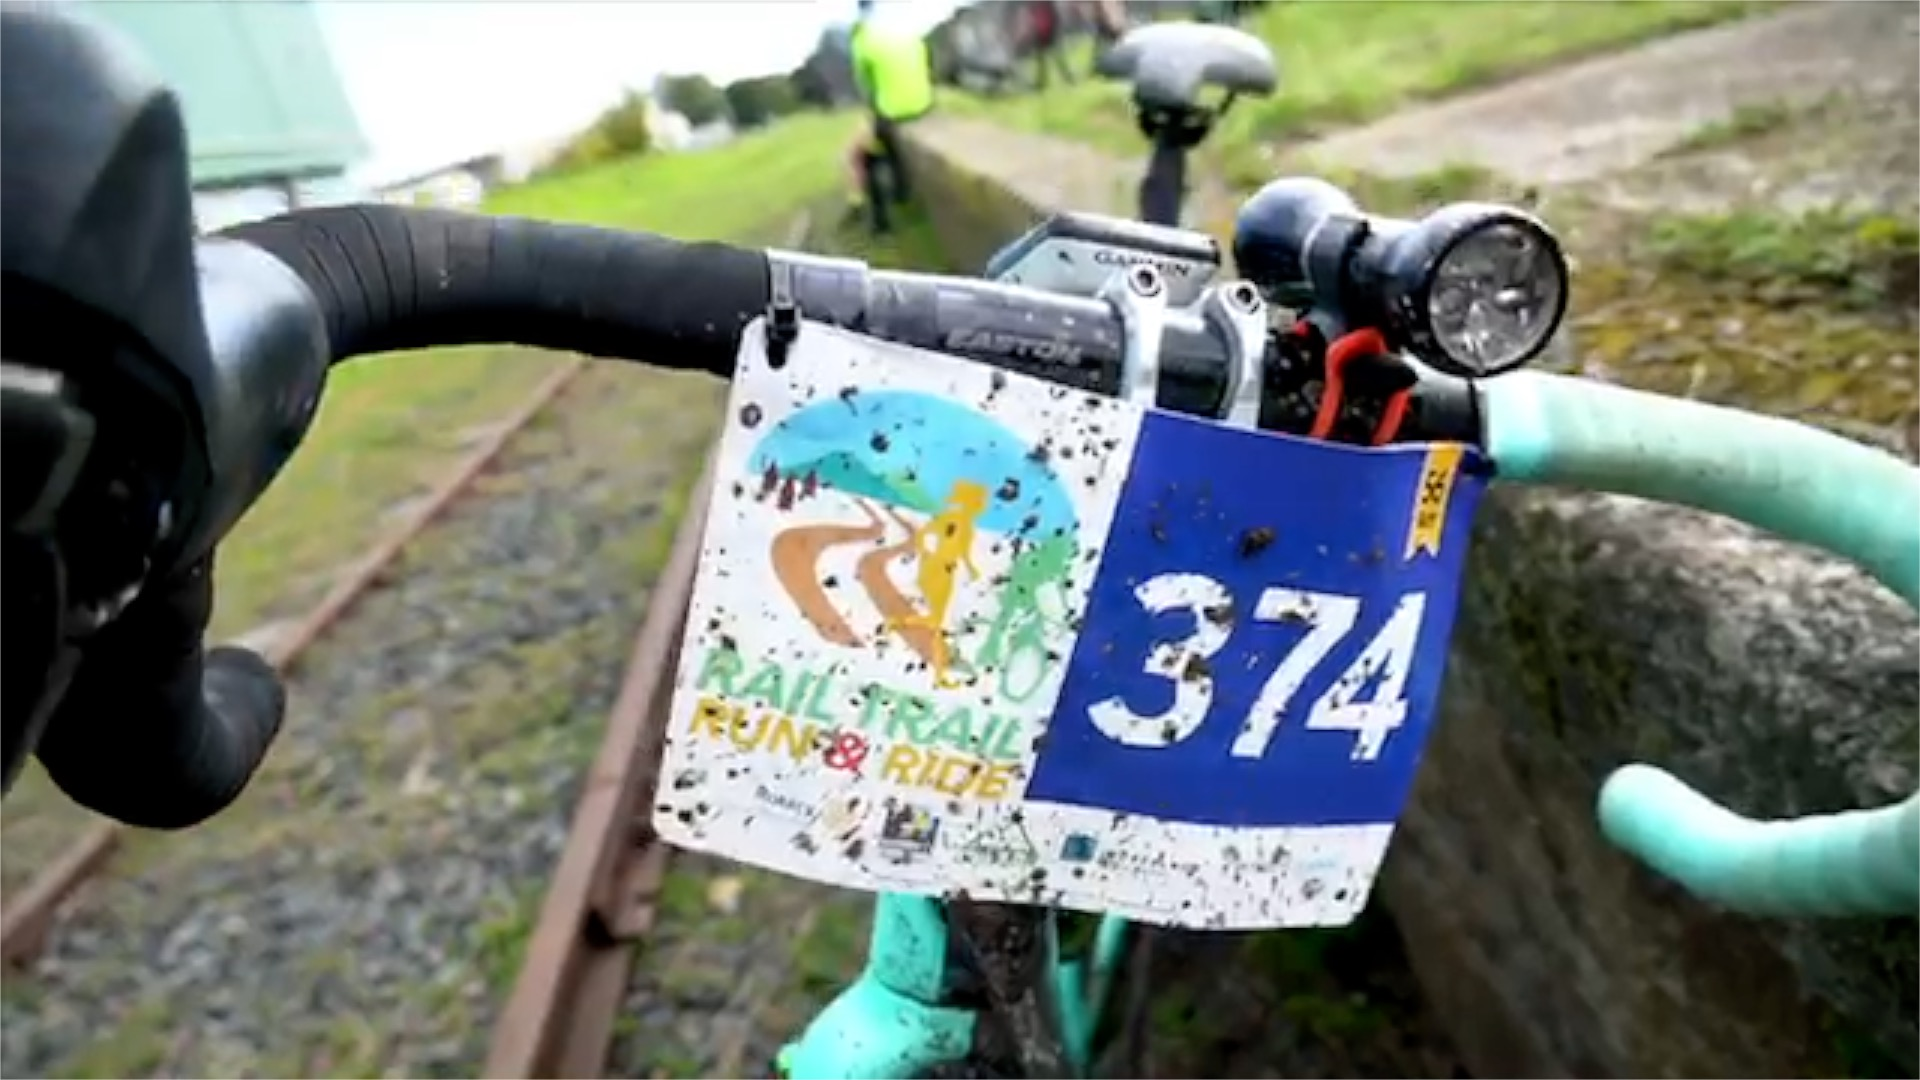 schedule - The Rail Trail Run and Ride is held across the 17th and 18th August 2019, with distances suitable for all ages.